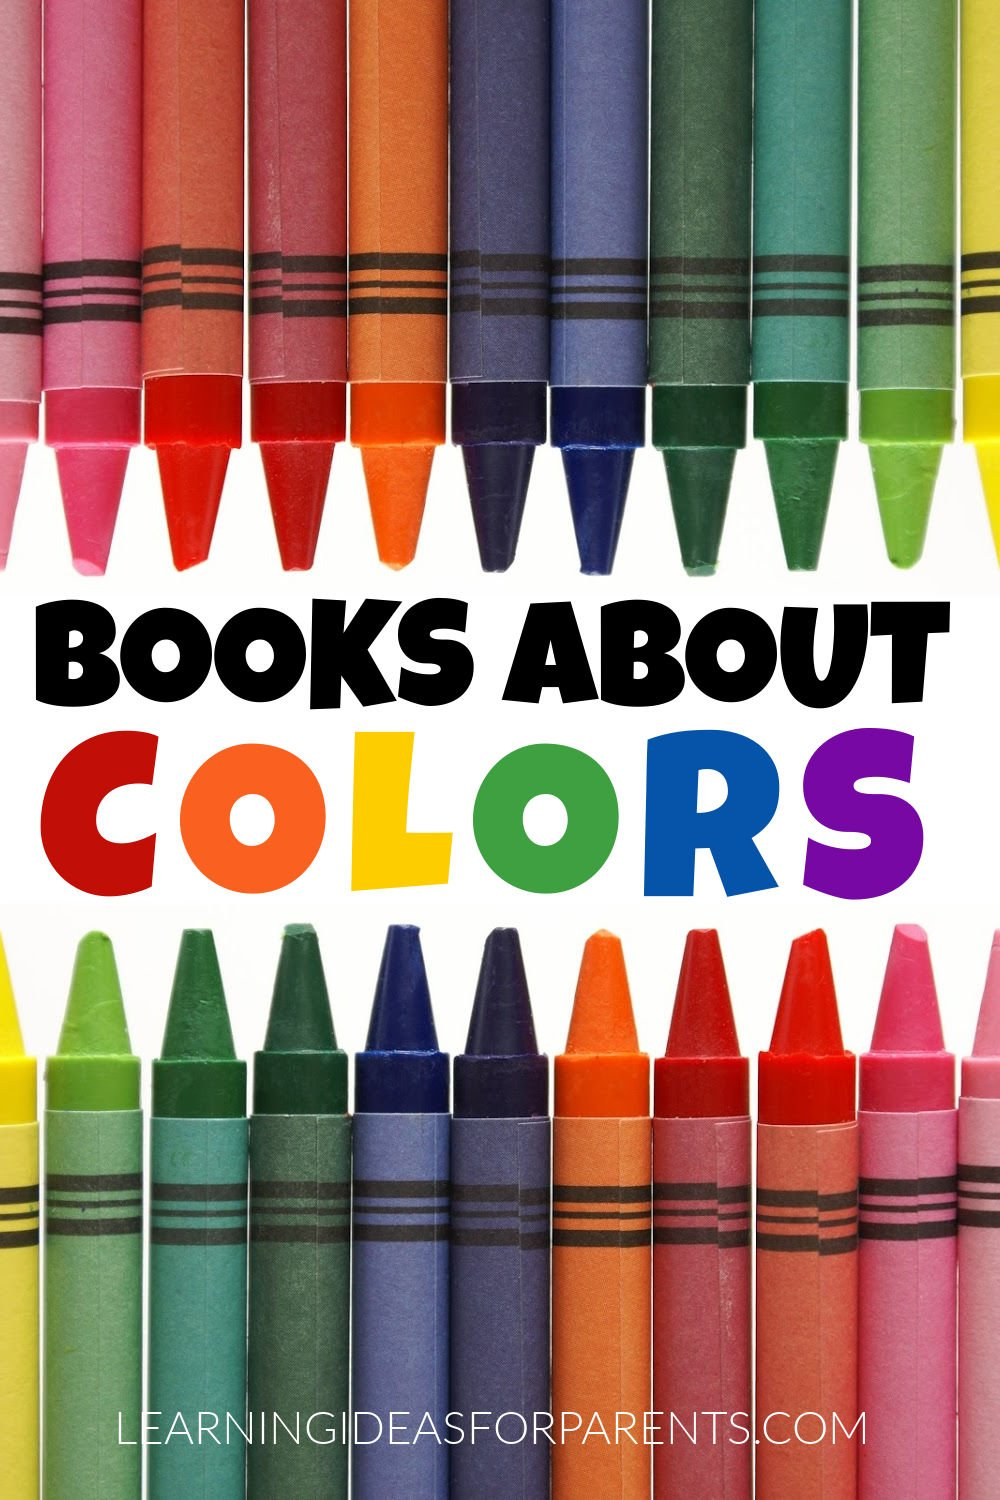 Books about colors for kids of all ages.